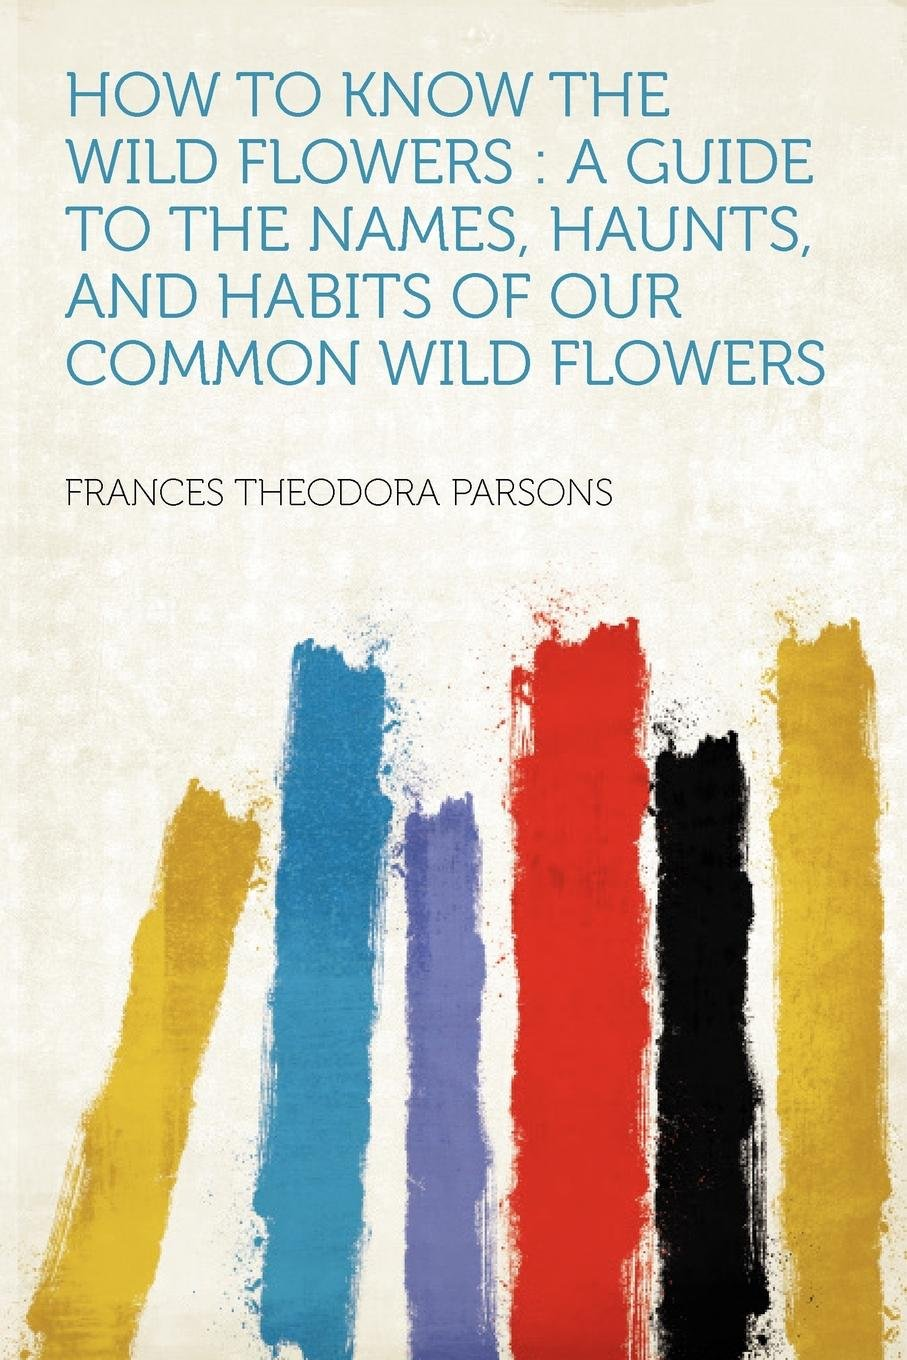 How to Know the Wild Flowers: a Guide to the Names, Haunts, and Habits of Our Common Wild Flowers